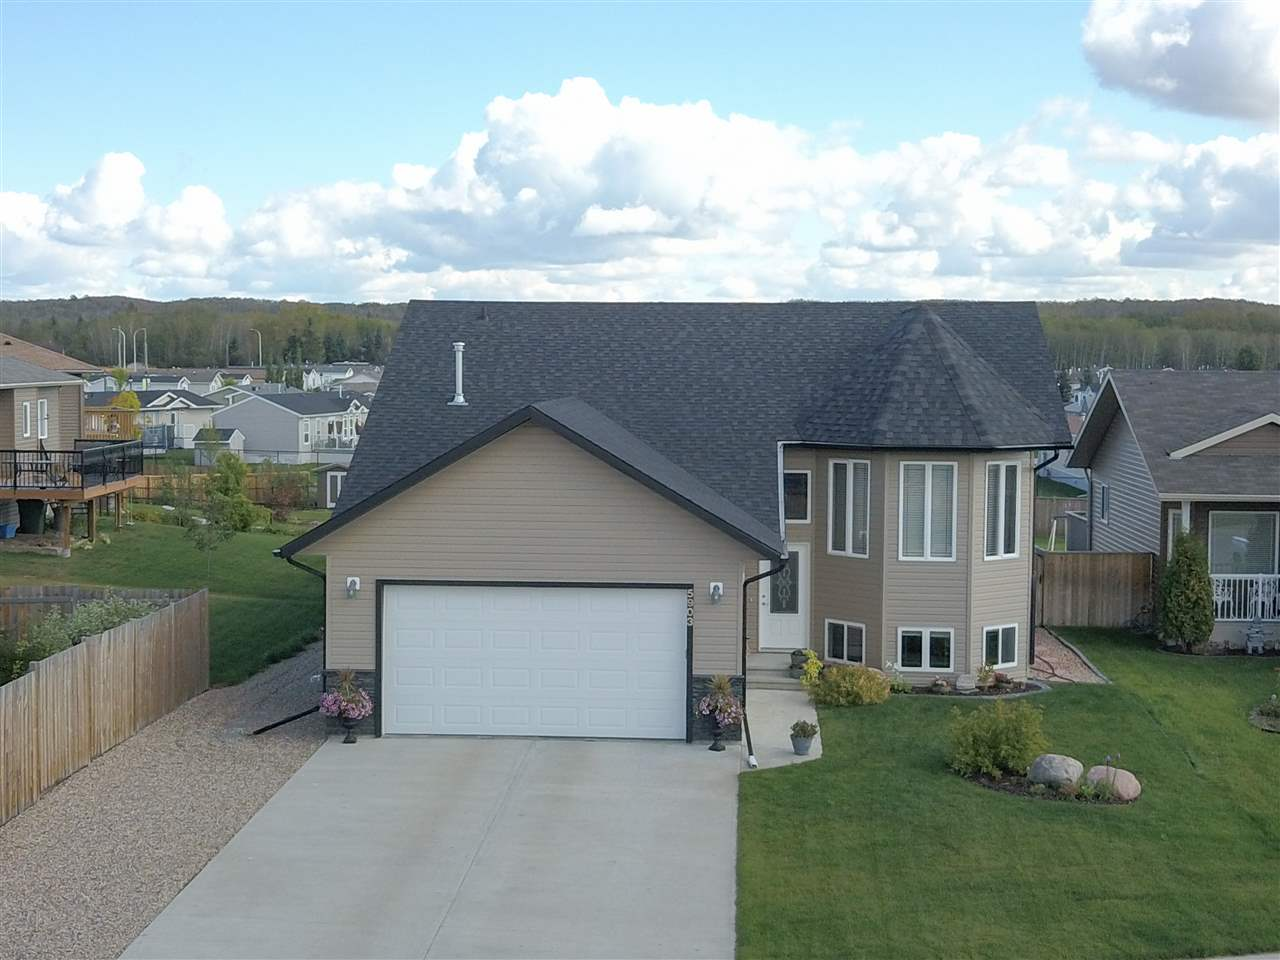 Main Photo: 5903 49 Street: Cold Lake House for sale : MLS®# E4098456